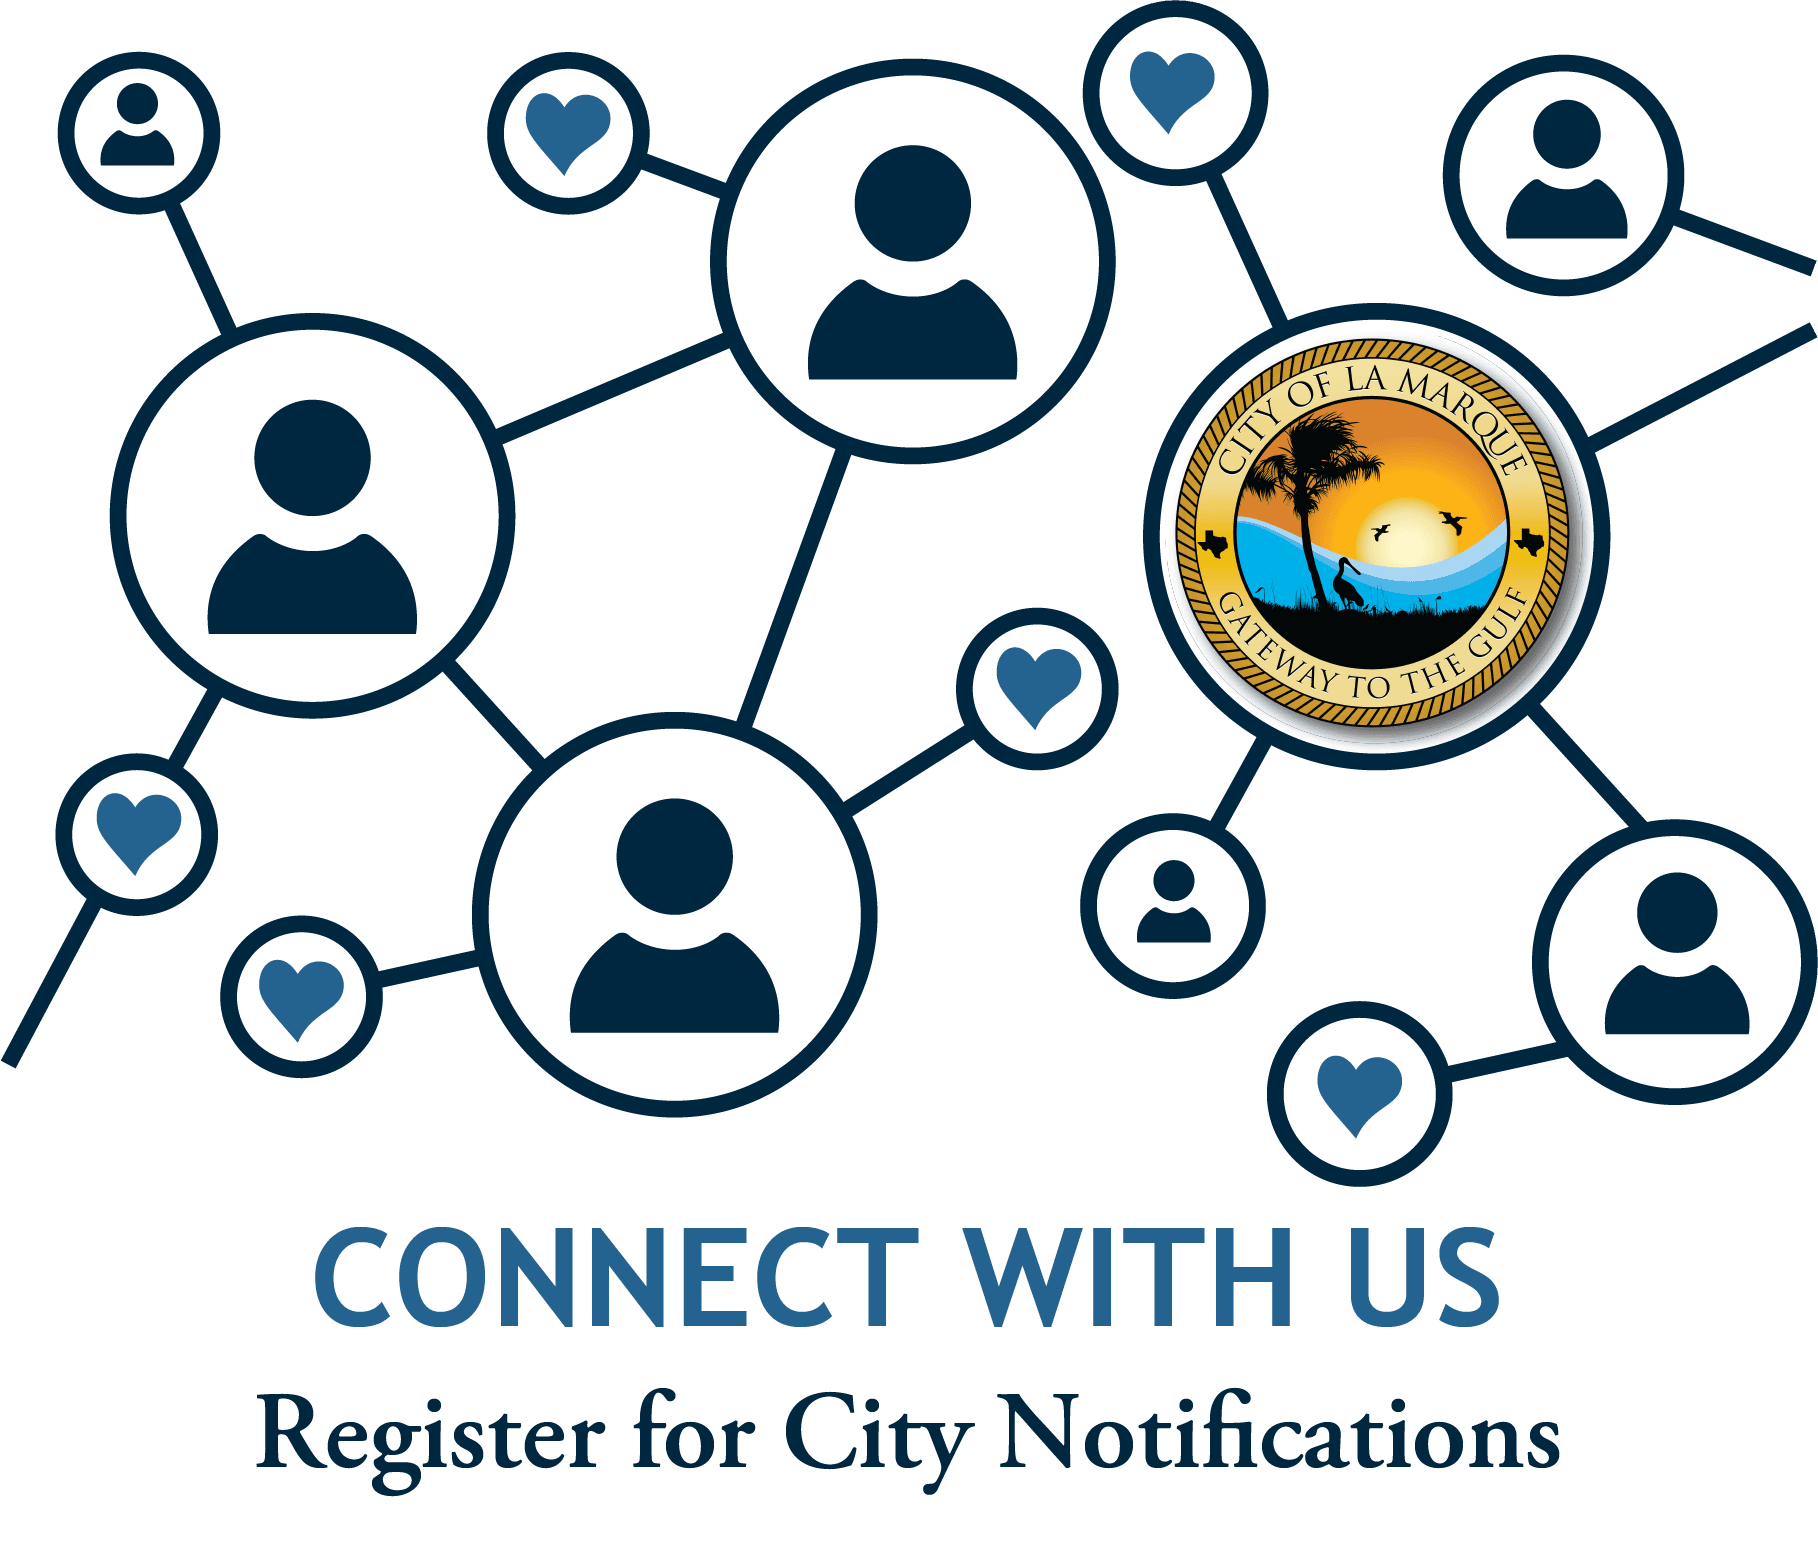 City Notifications graphic with line drawing people connected by circles and lines